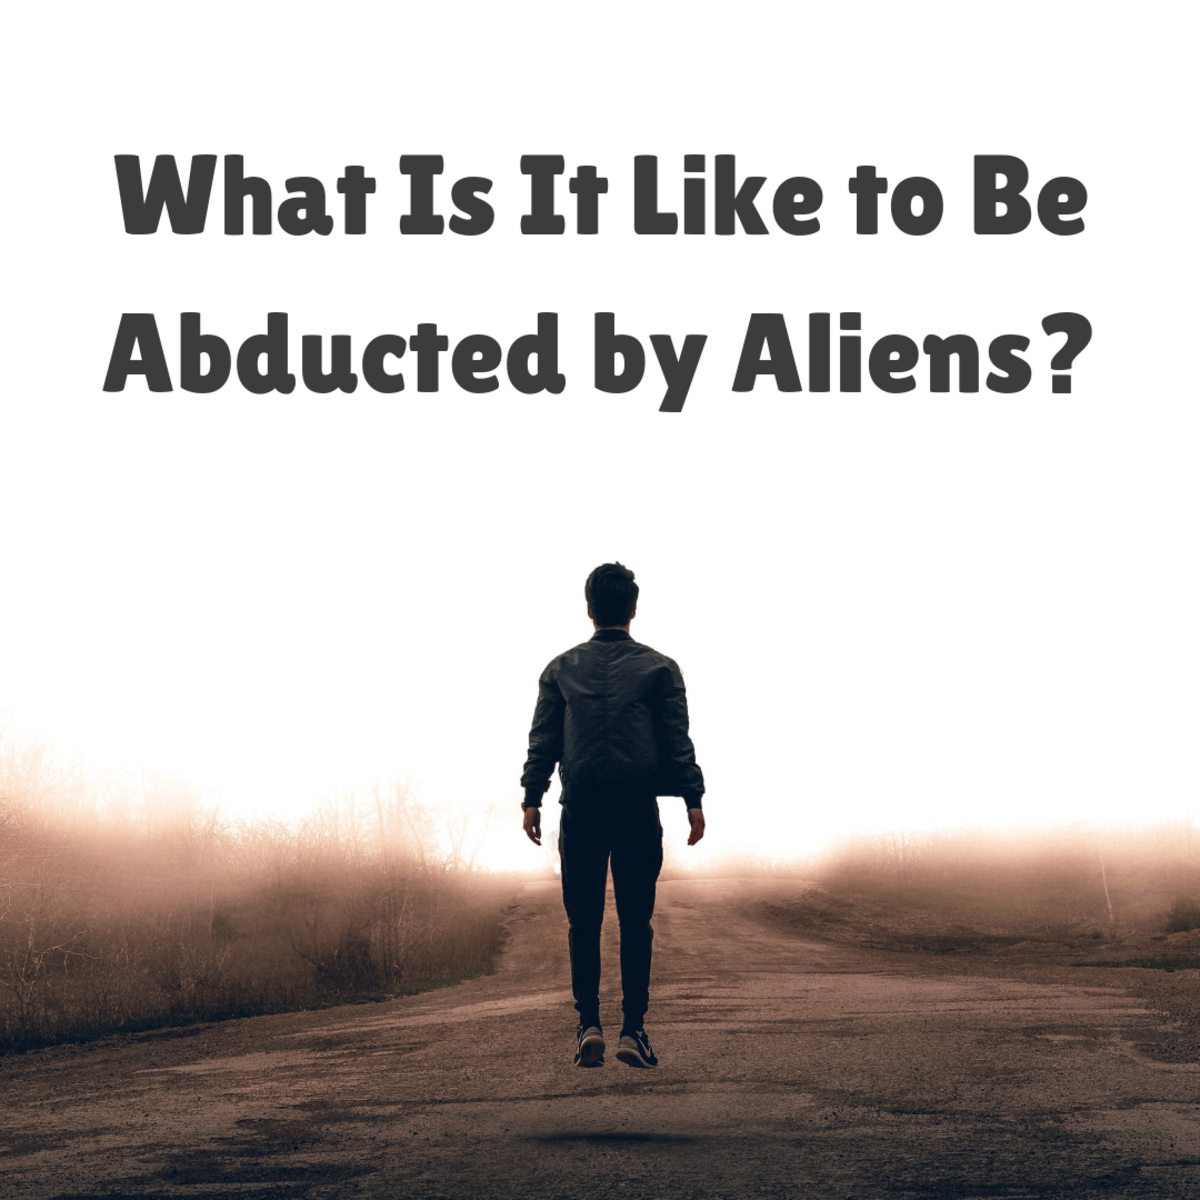 My True UFO Story: What Is It Like to Be Abducted by Aliens?